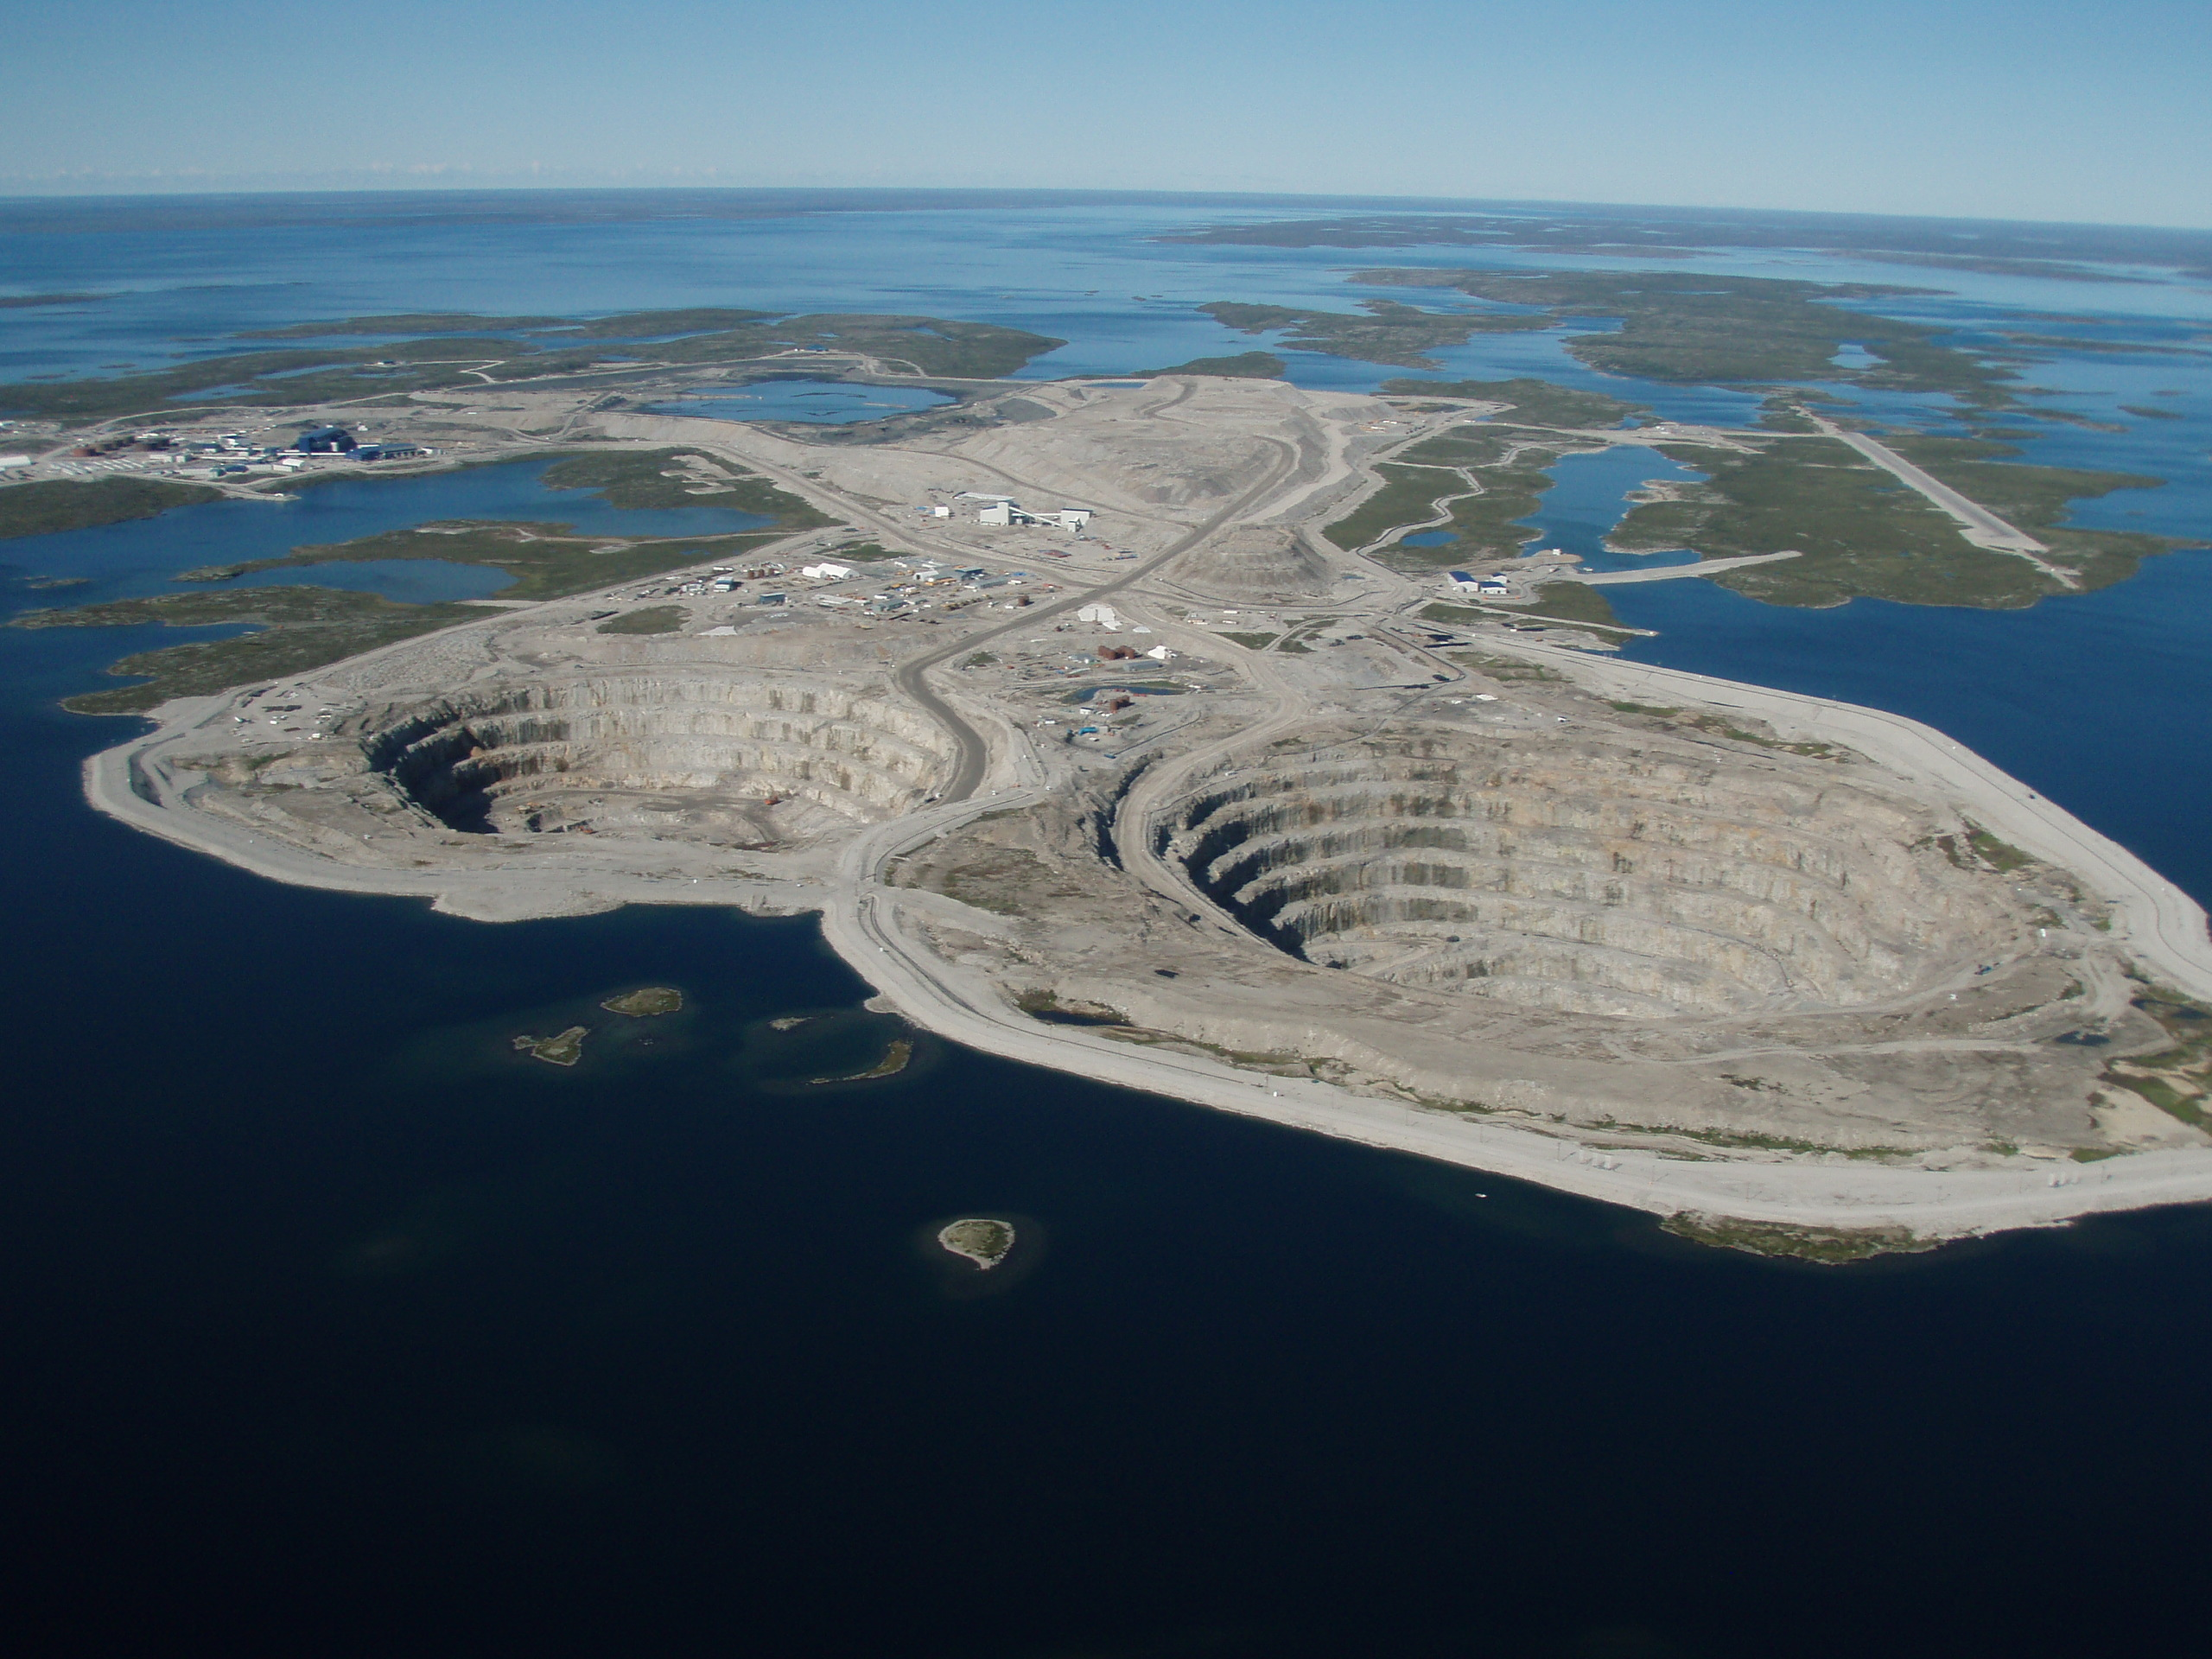 Diavik Diamond Mine at Lac de Gras, Northwest Territories, Canada